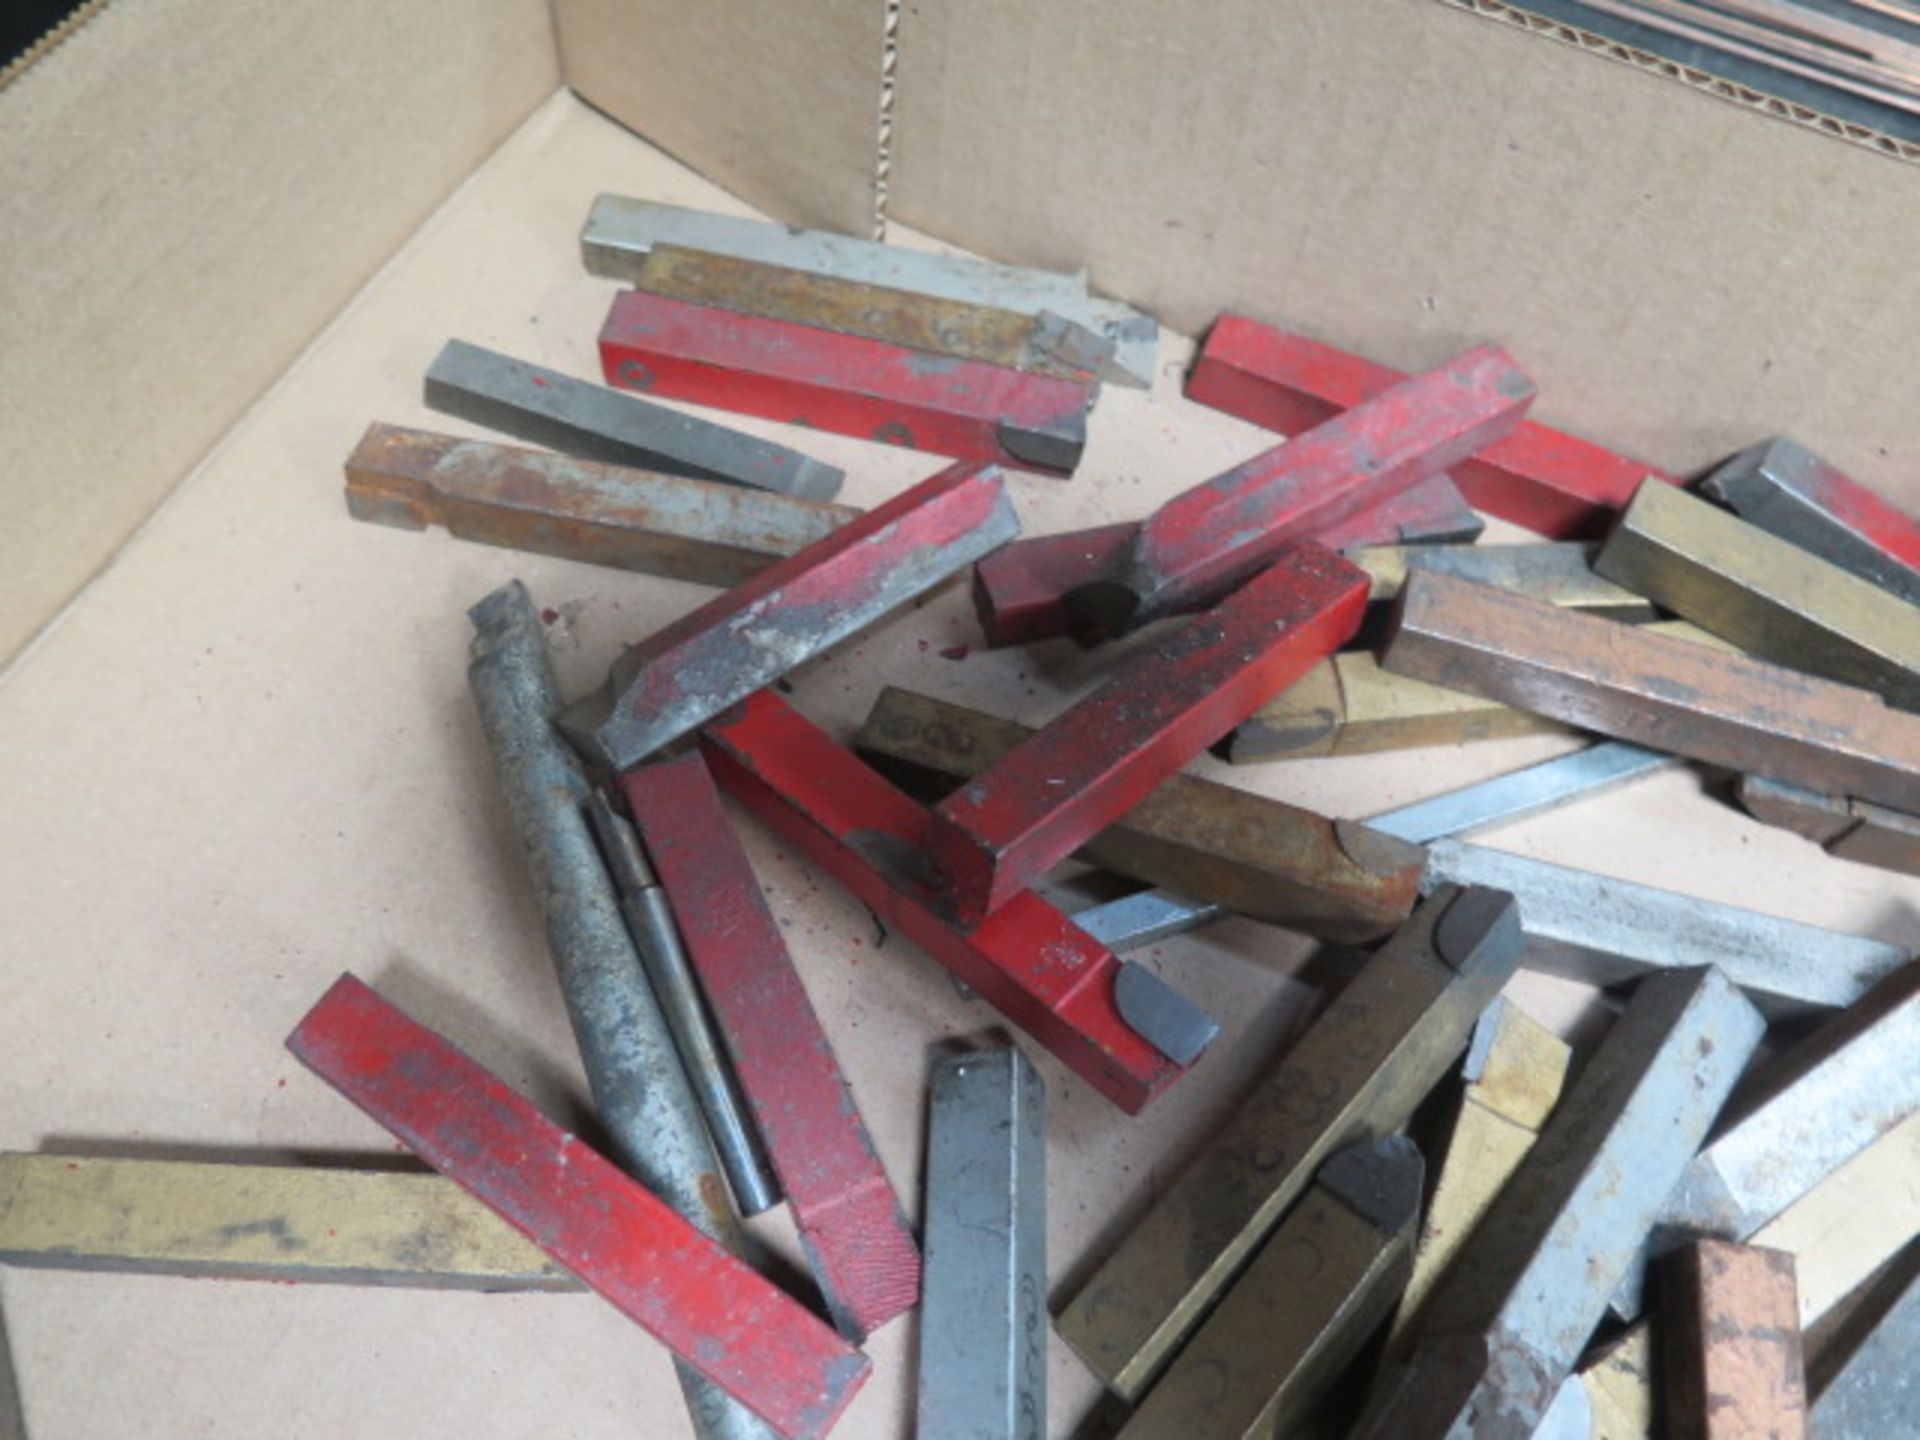 Braised Tipped Lathe Tooling (SOLD AS-IS - NO WARRANTY) - Image 3 of 4